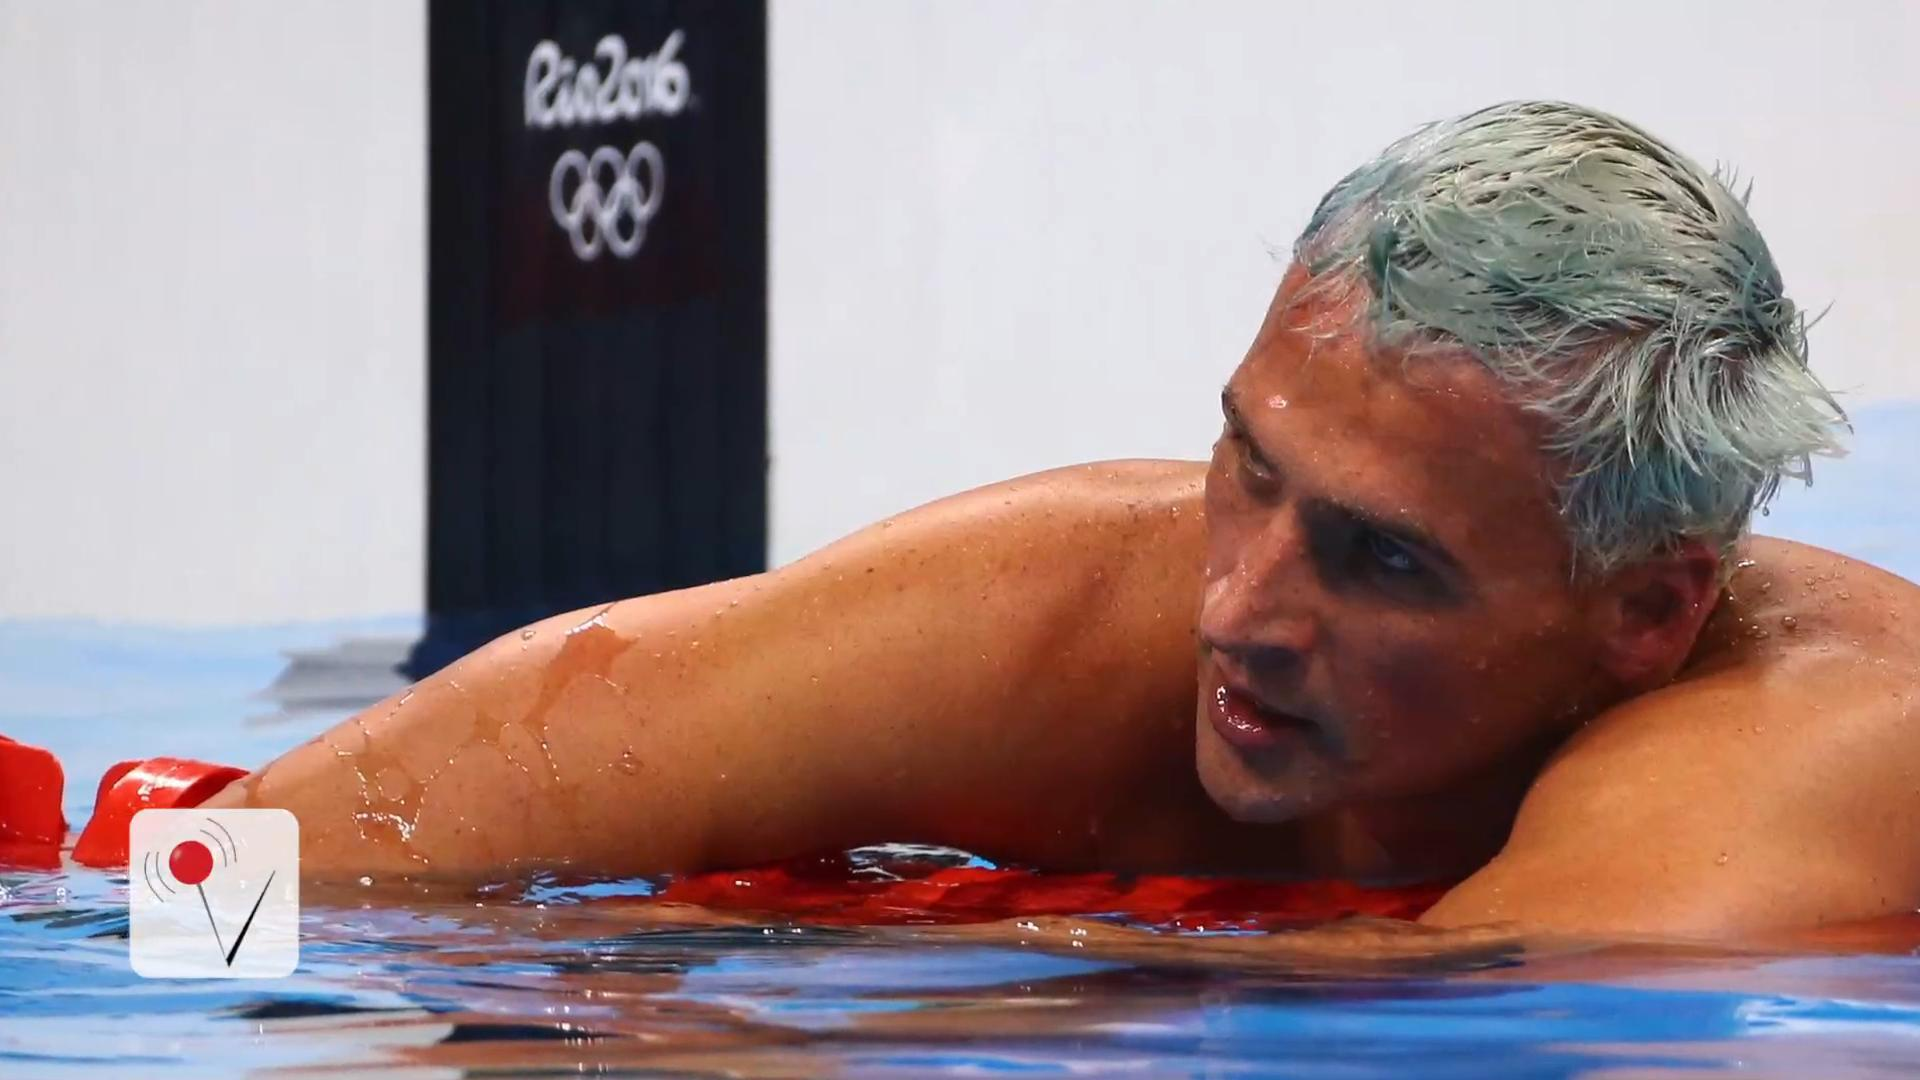 Police Say Ryan Lochte Made Up Robbery Story After Gas Station Fight